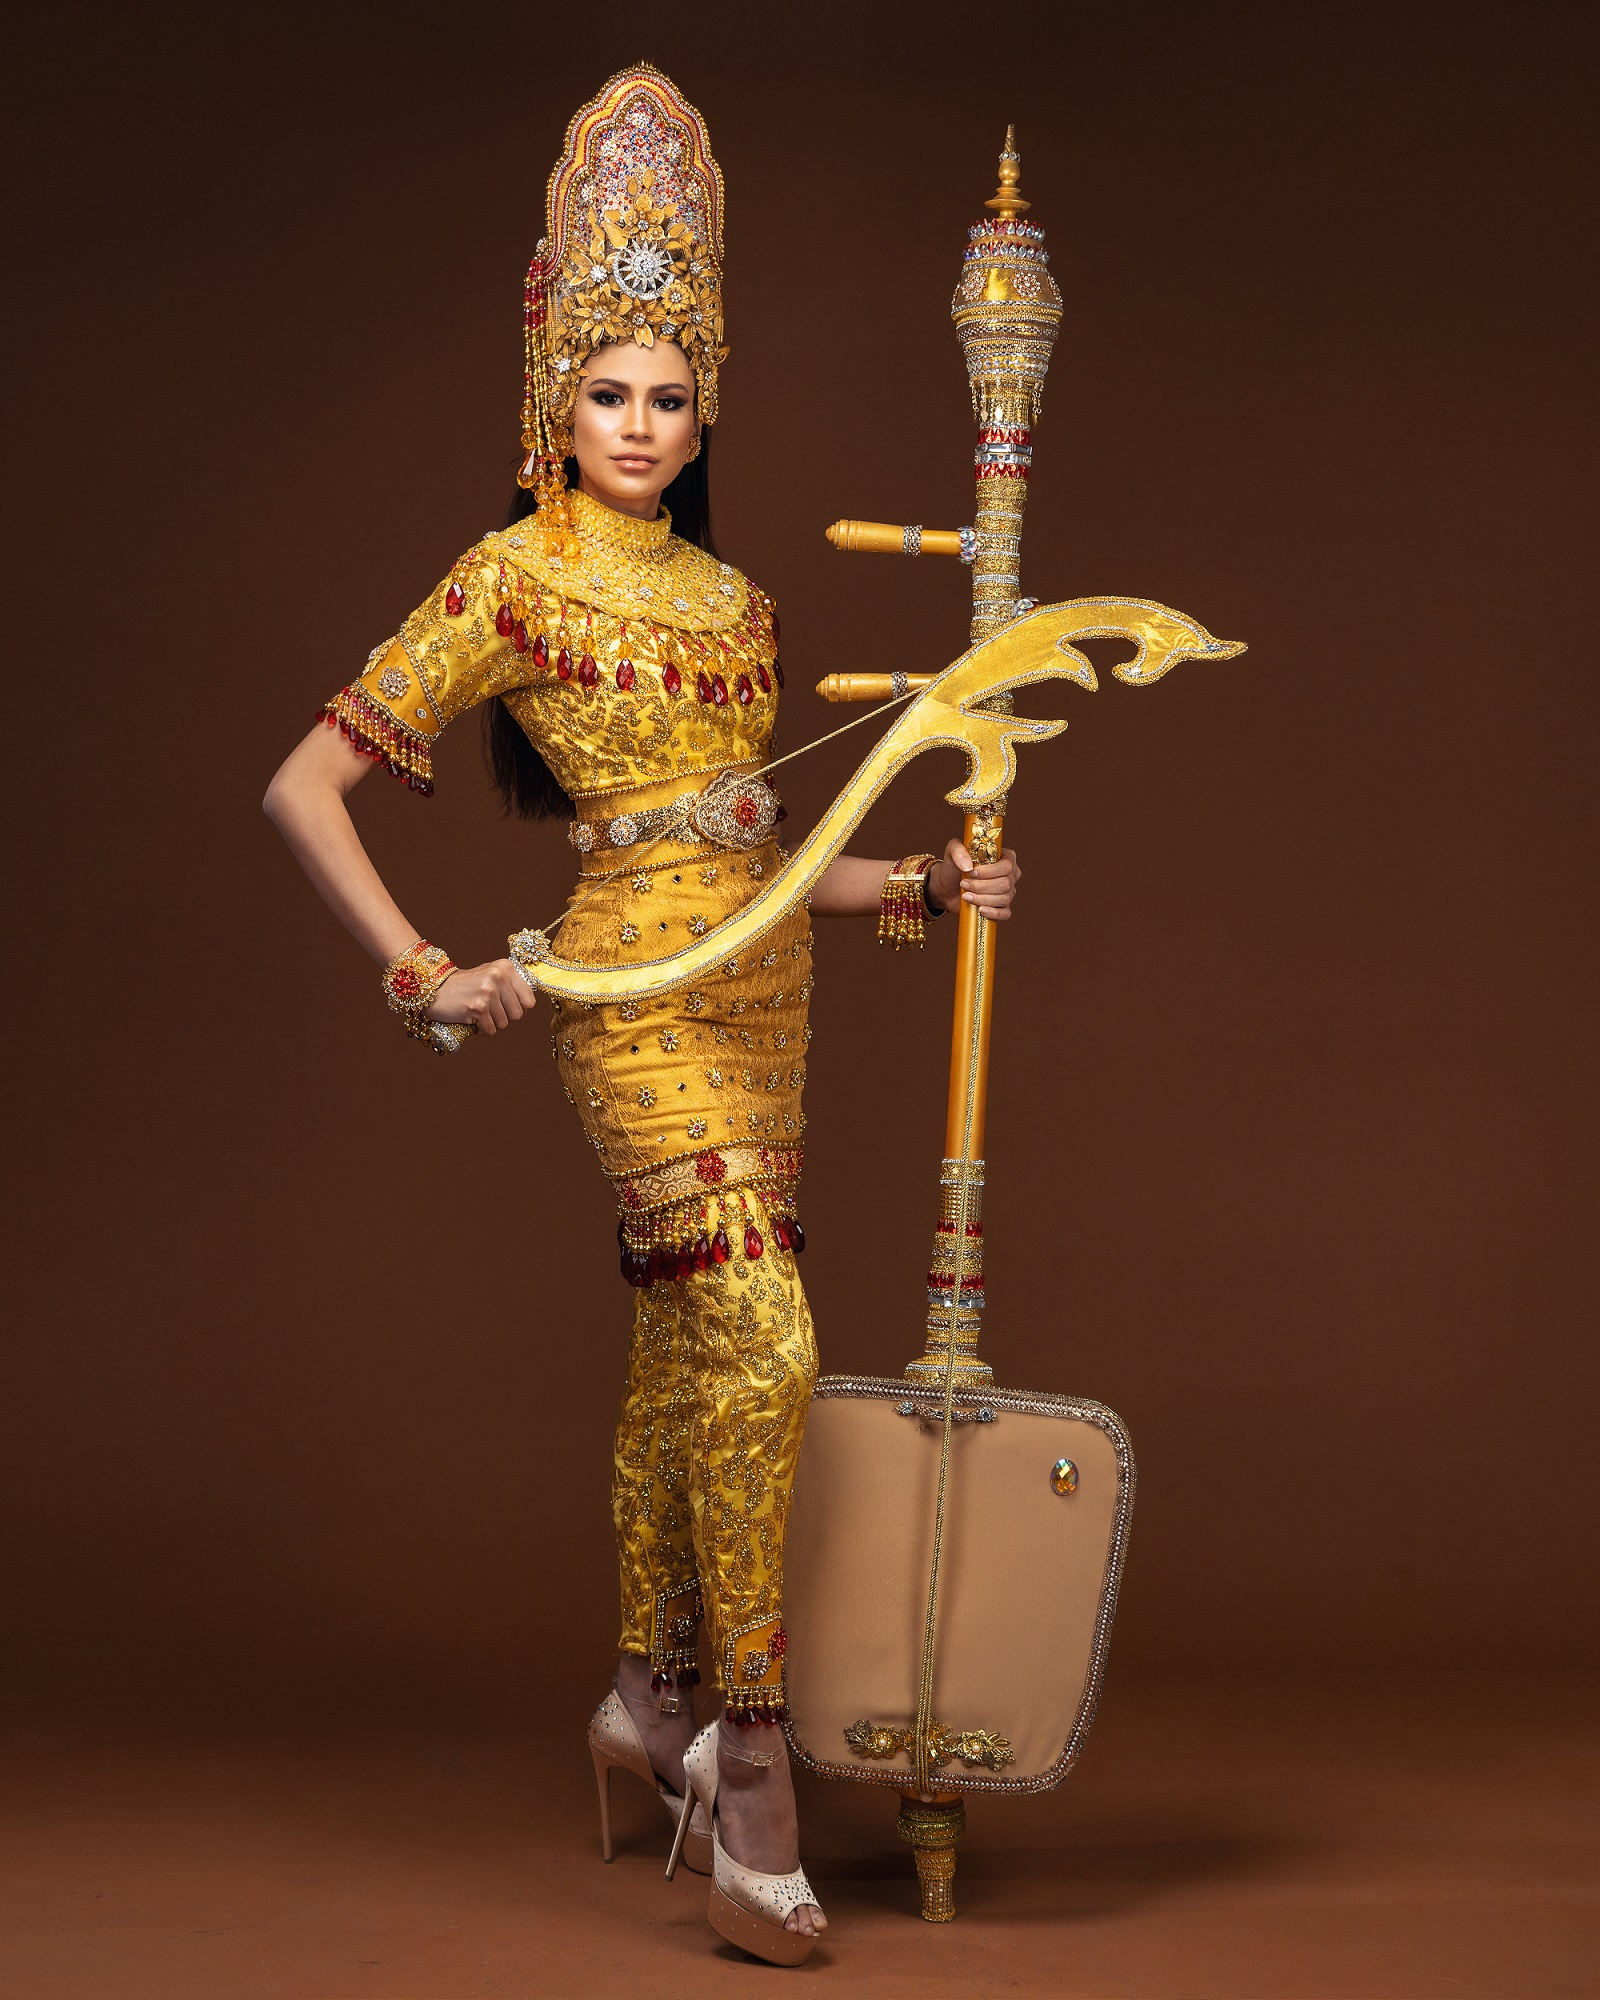 The costume was designed by Ain Mohamad from Kelantan.